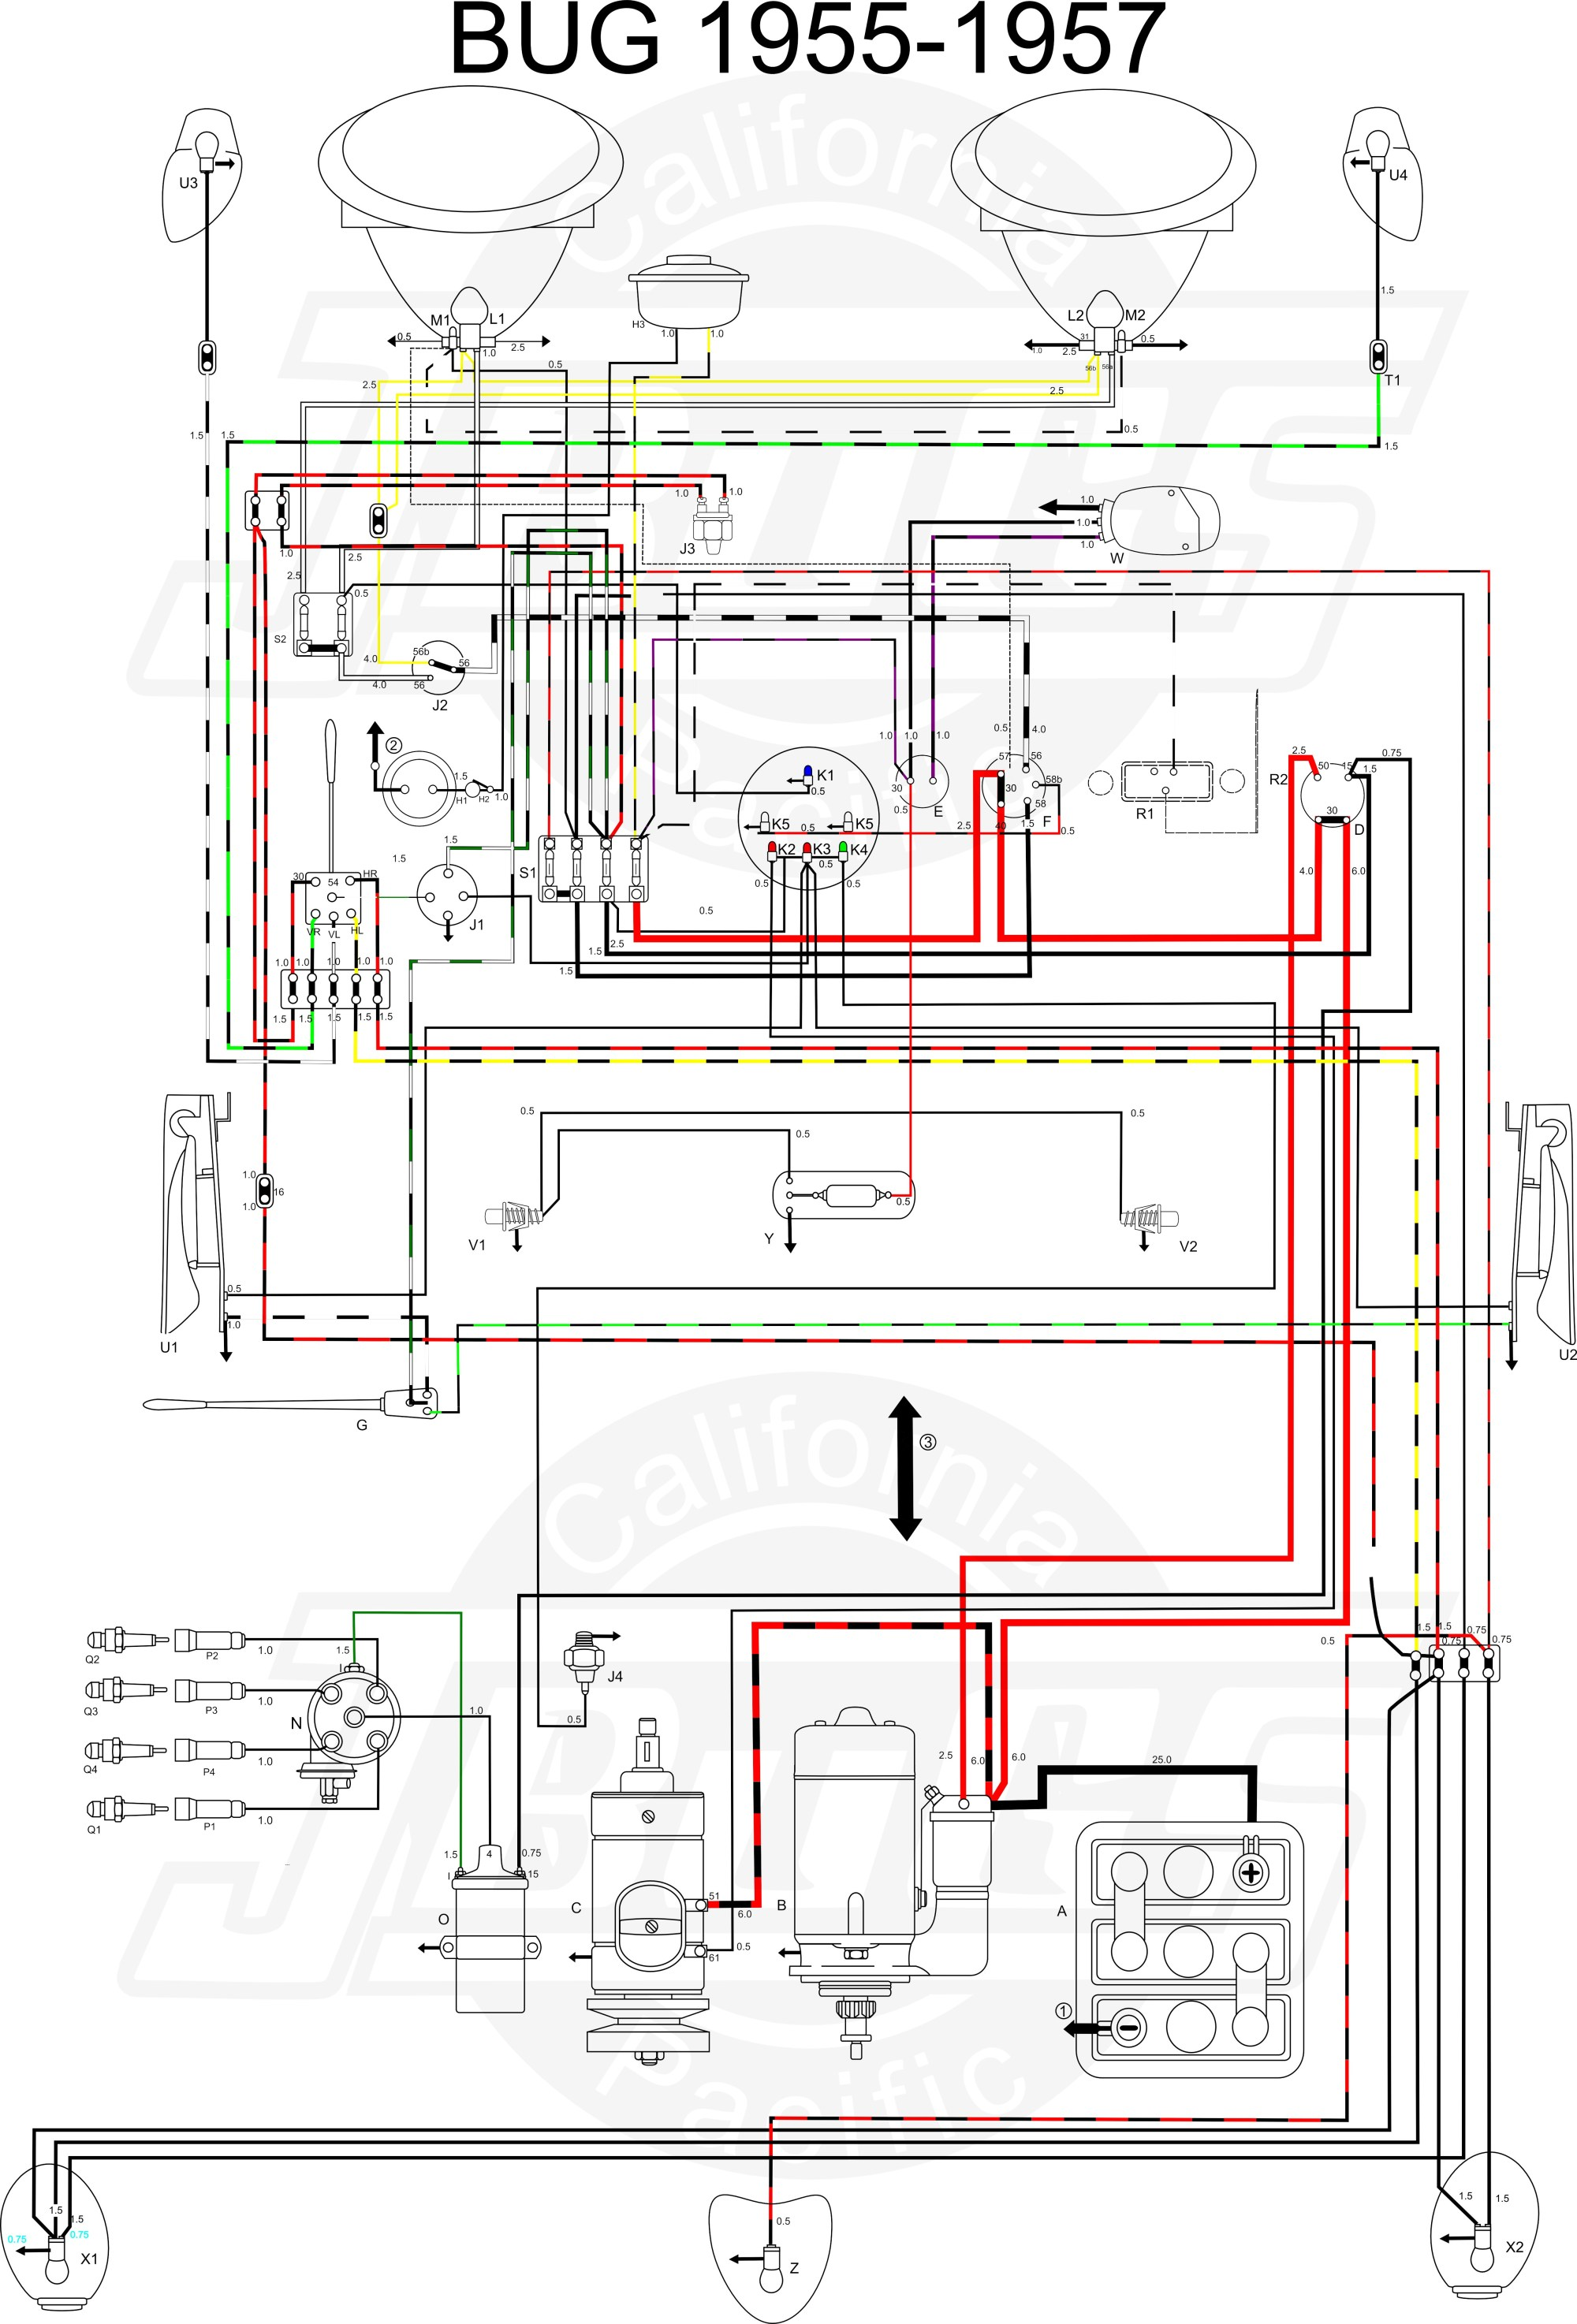 hight resolution of trike wiring diagram wiring diagrams vw beetle wiring 1600cc volkswagen trike wiring diagram